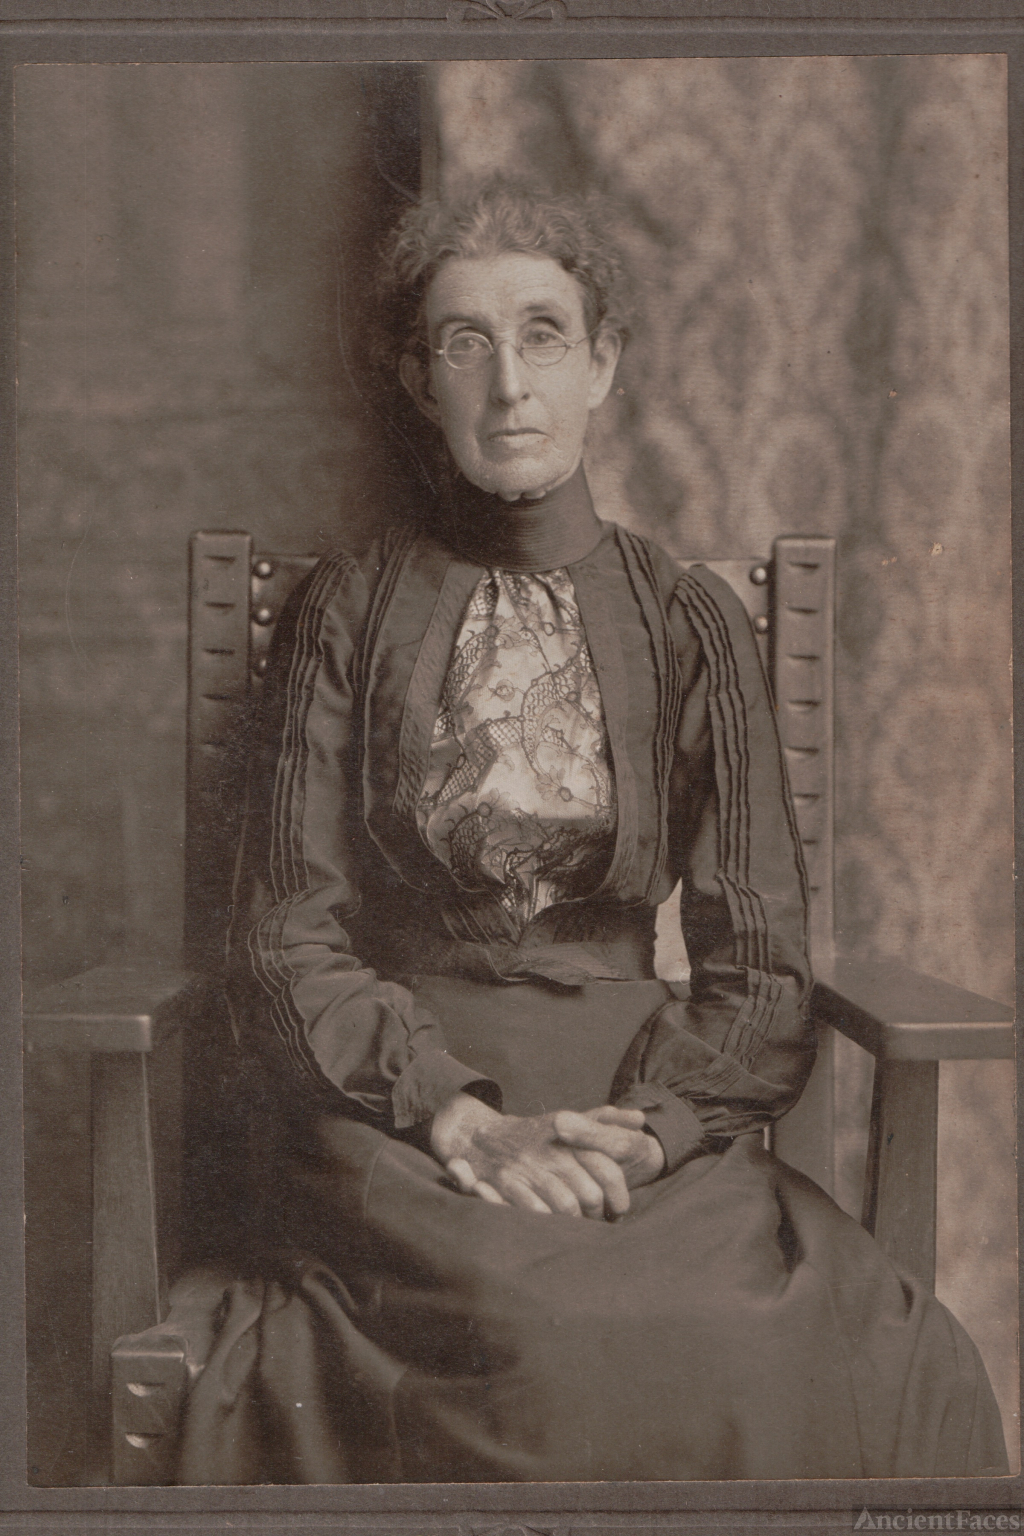 Martha Elvira Gaston (Jones)